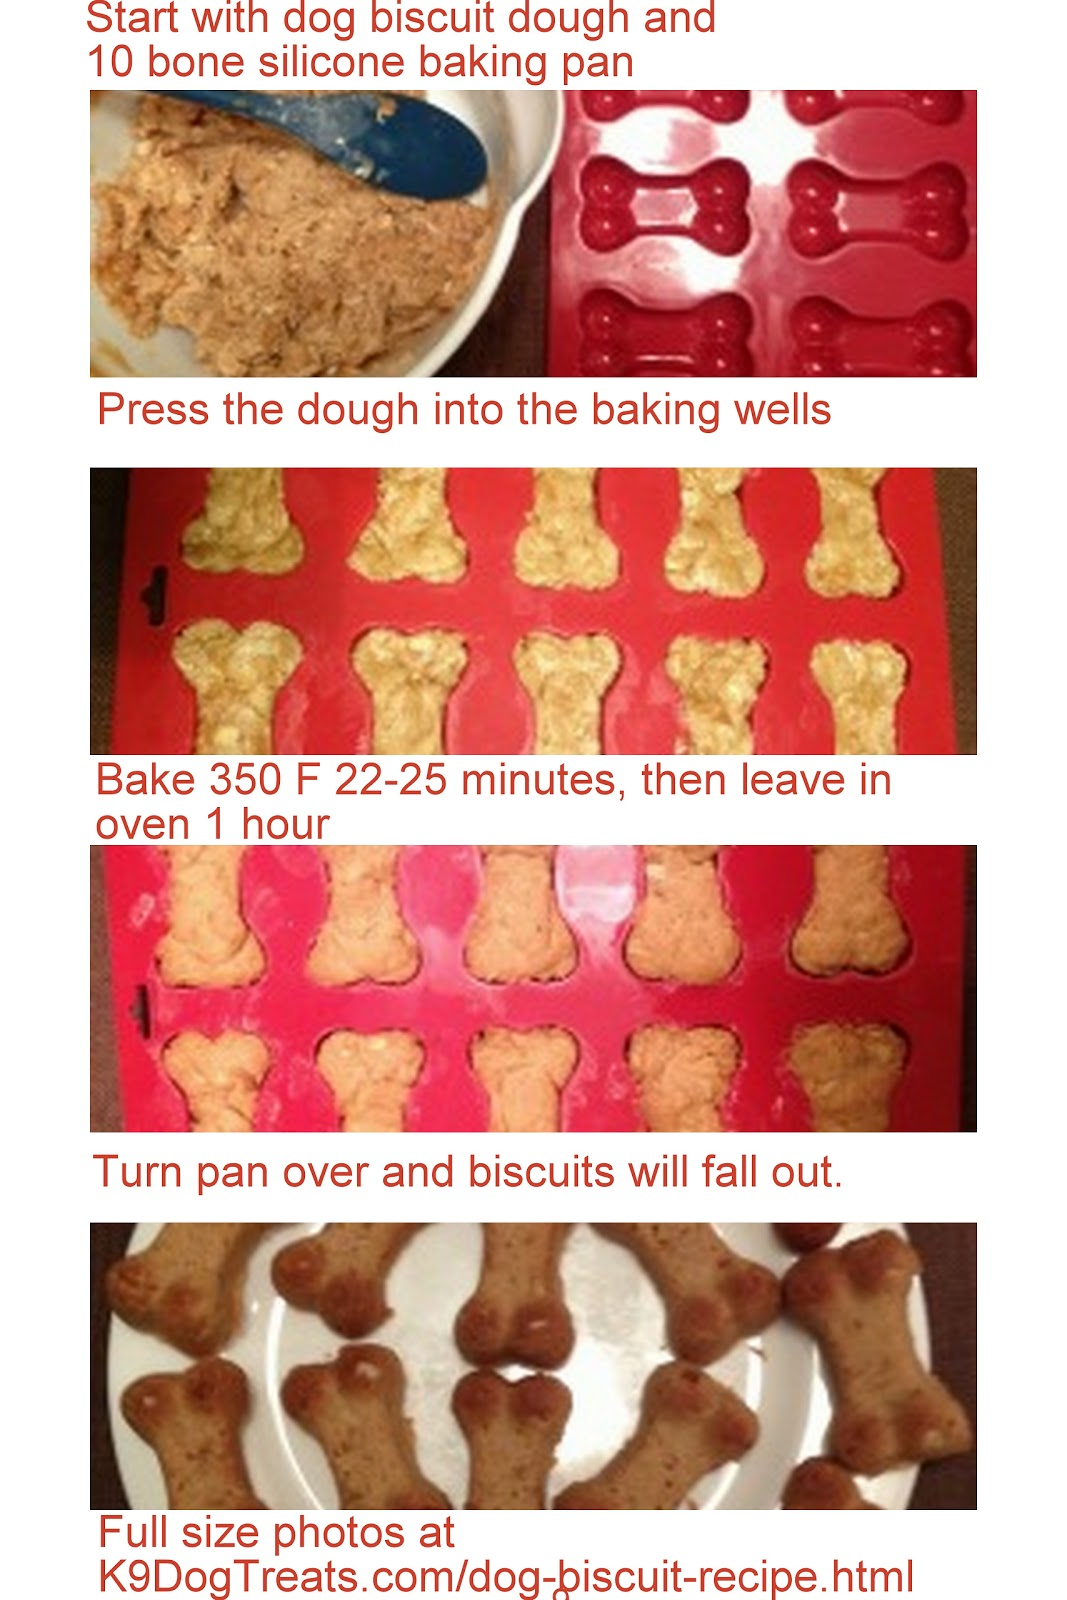 Dog biscuit recipe